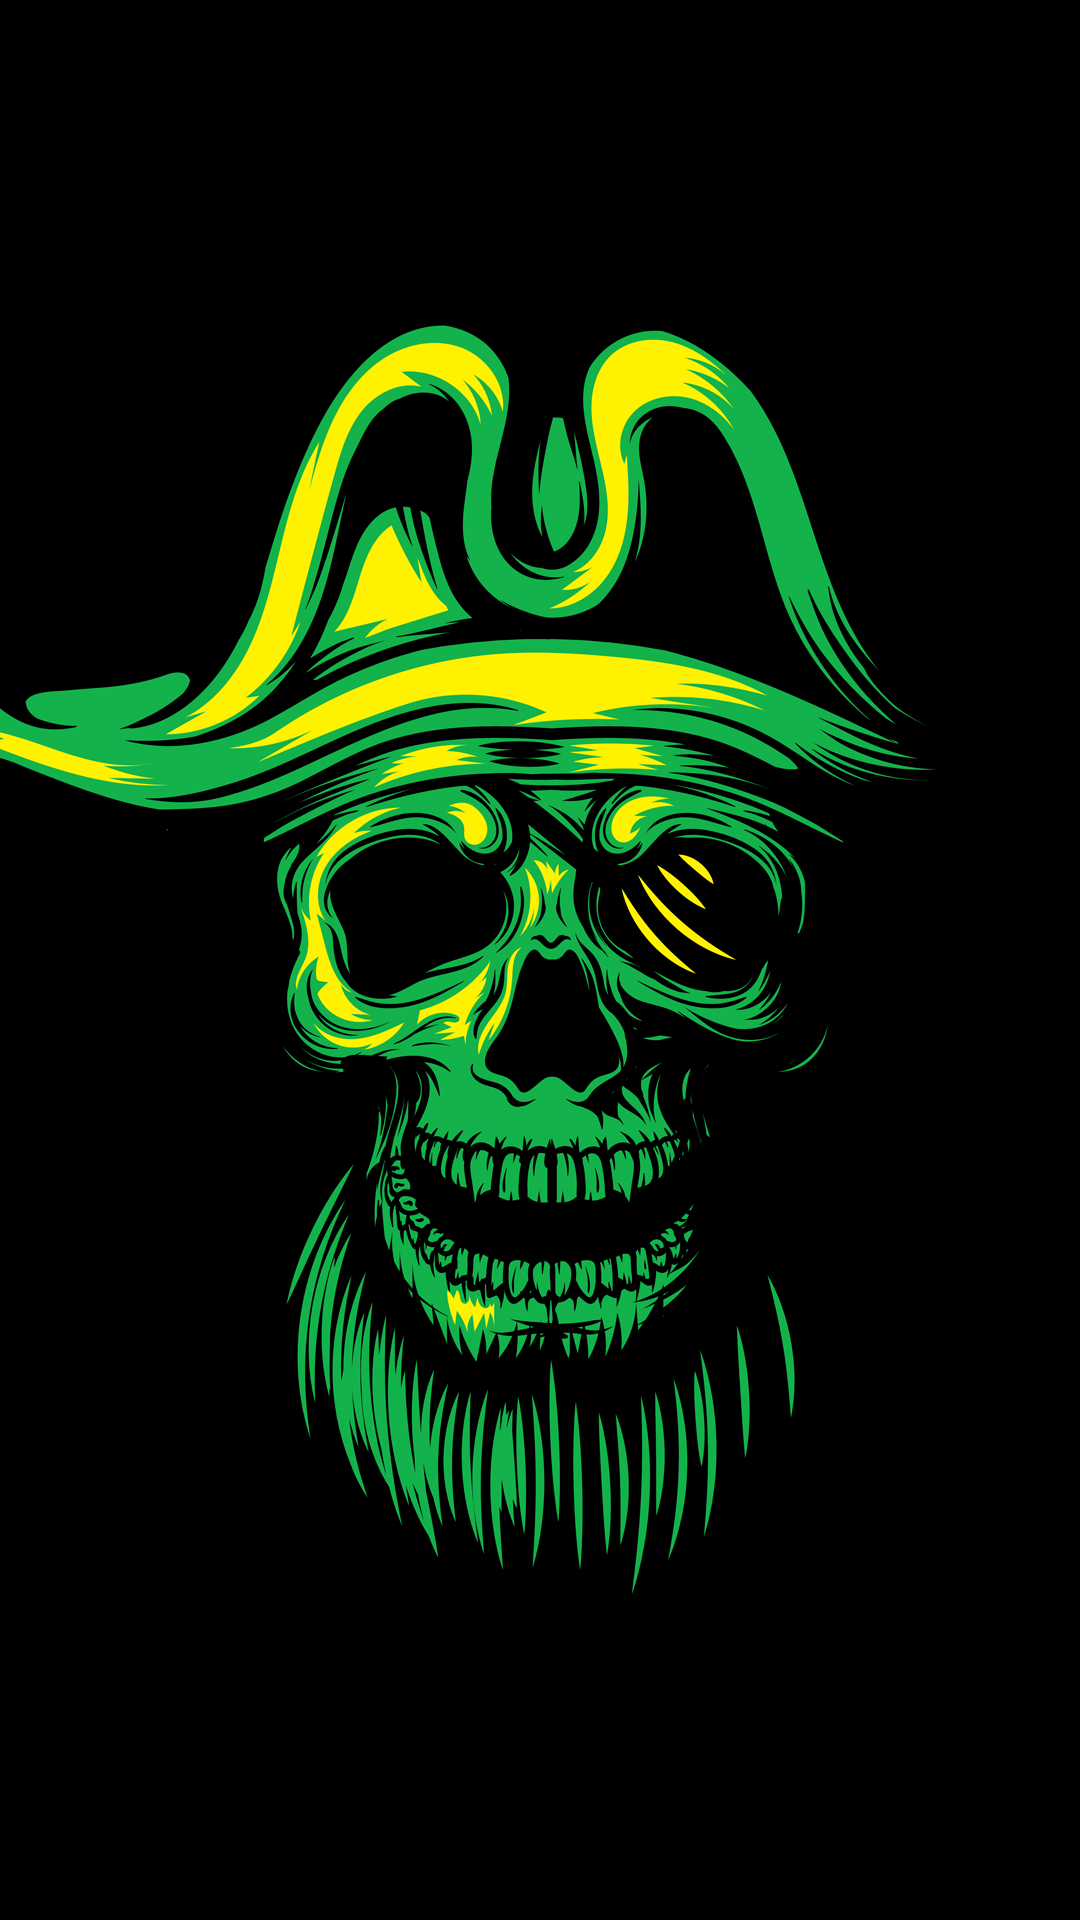 Live Wallpaper On Home Screen For Iphone X Ultra Hd Pirate Skull Wallpaper For Your Mobile Phone 0215